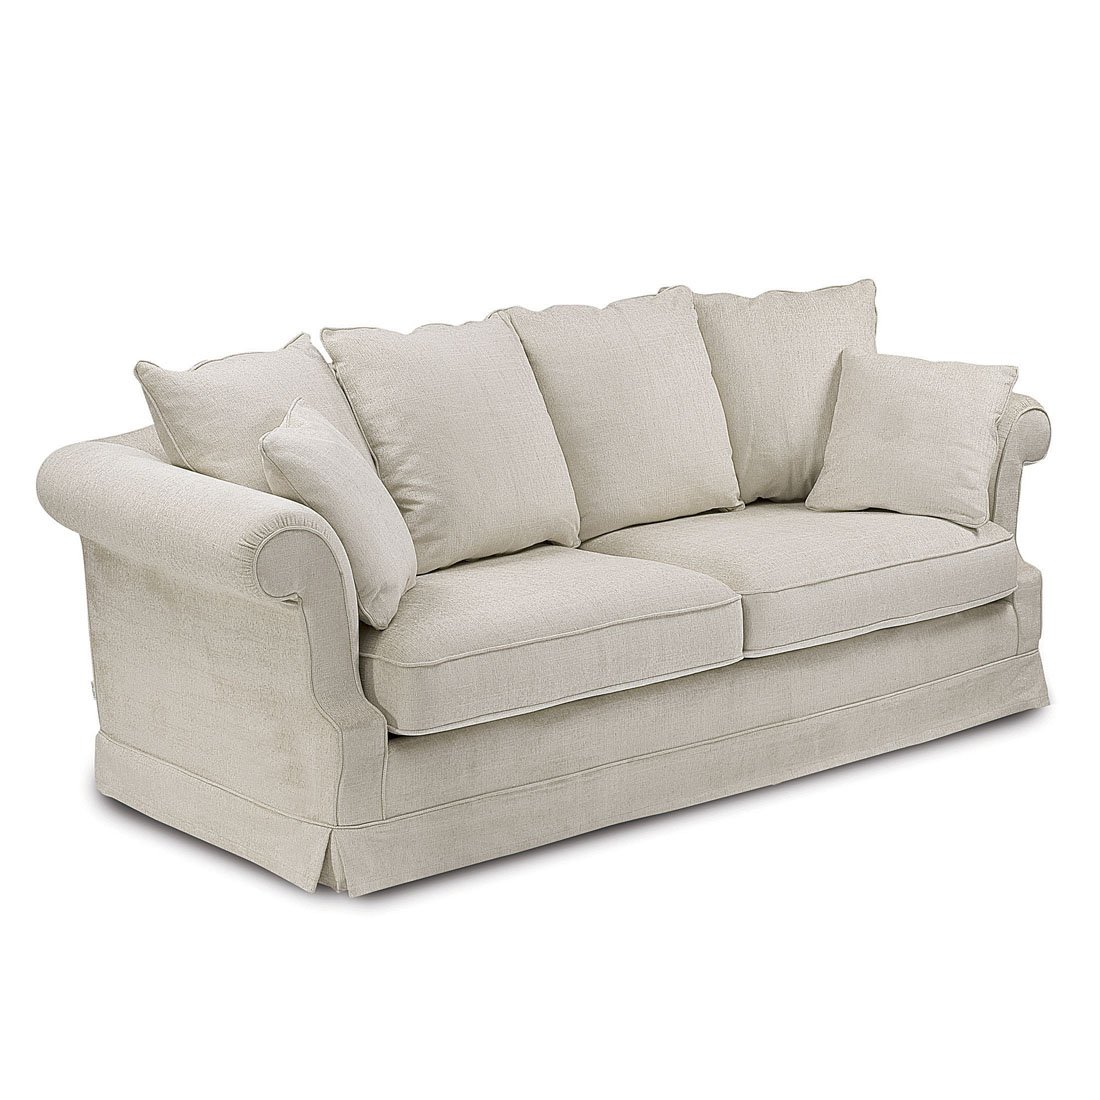 canape convertible 160x200 With canapé convertible couchage 160x200